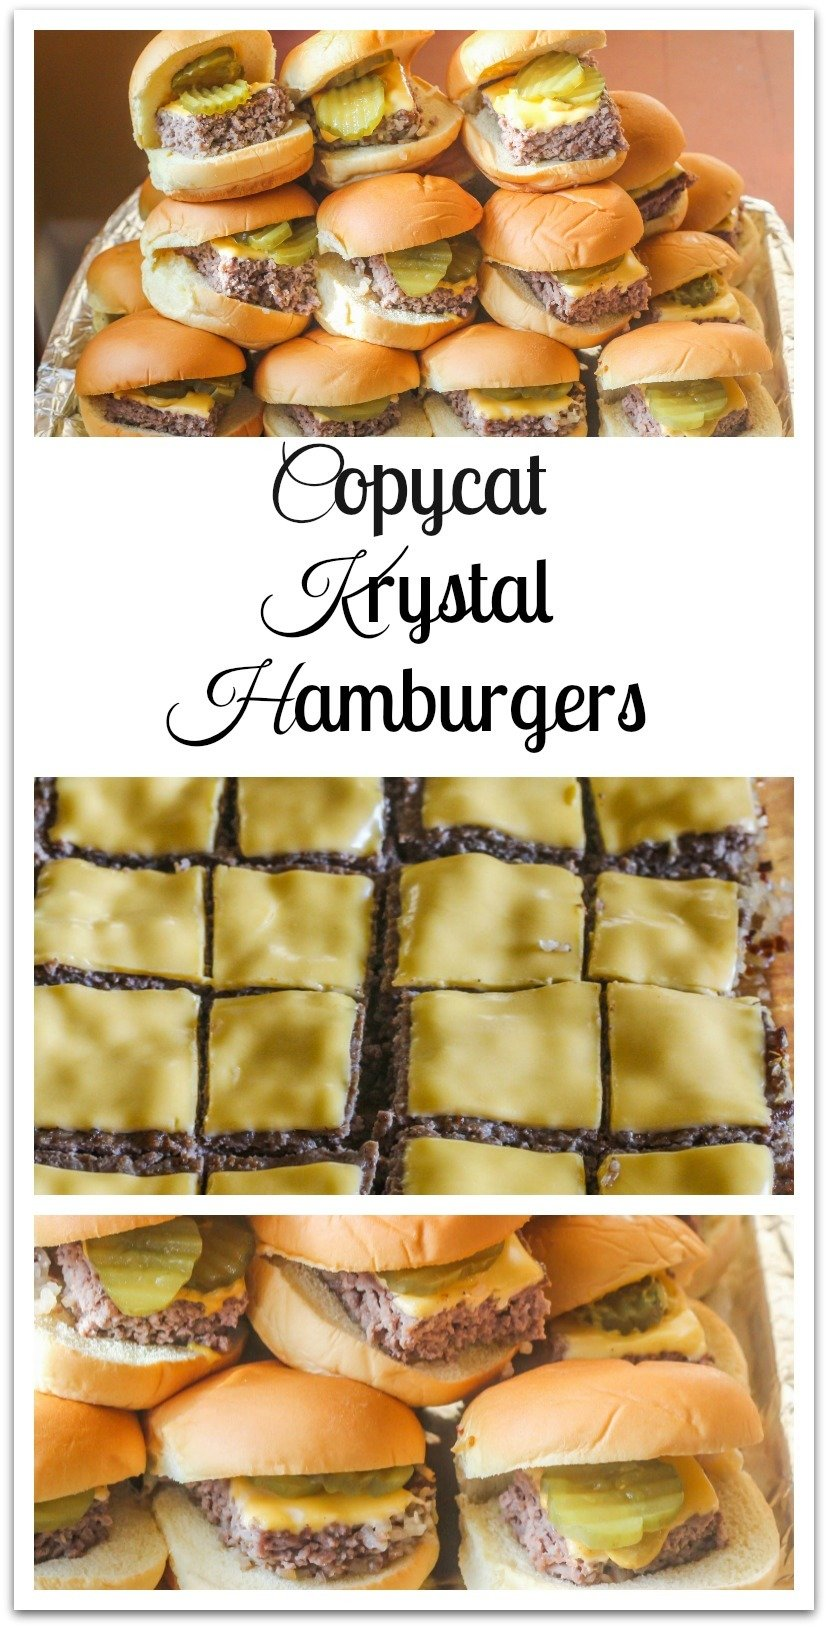 As we munched on the simple  little square hamburgers that had  a beef patty, cooked onions, dill pickle, mustard and a steamed bun, we would talk about our day at school. #Hamburgers #CopycatKrystal